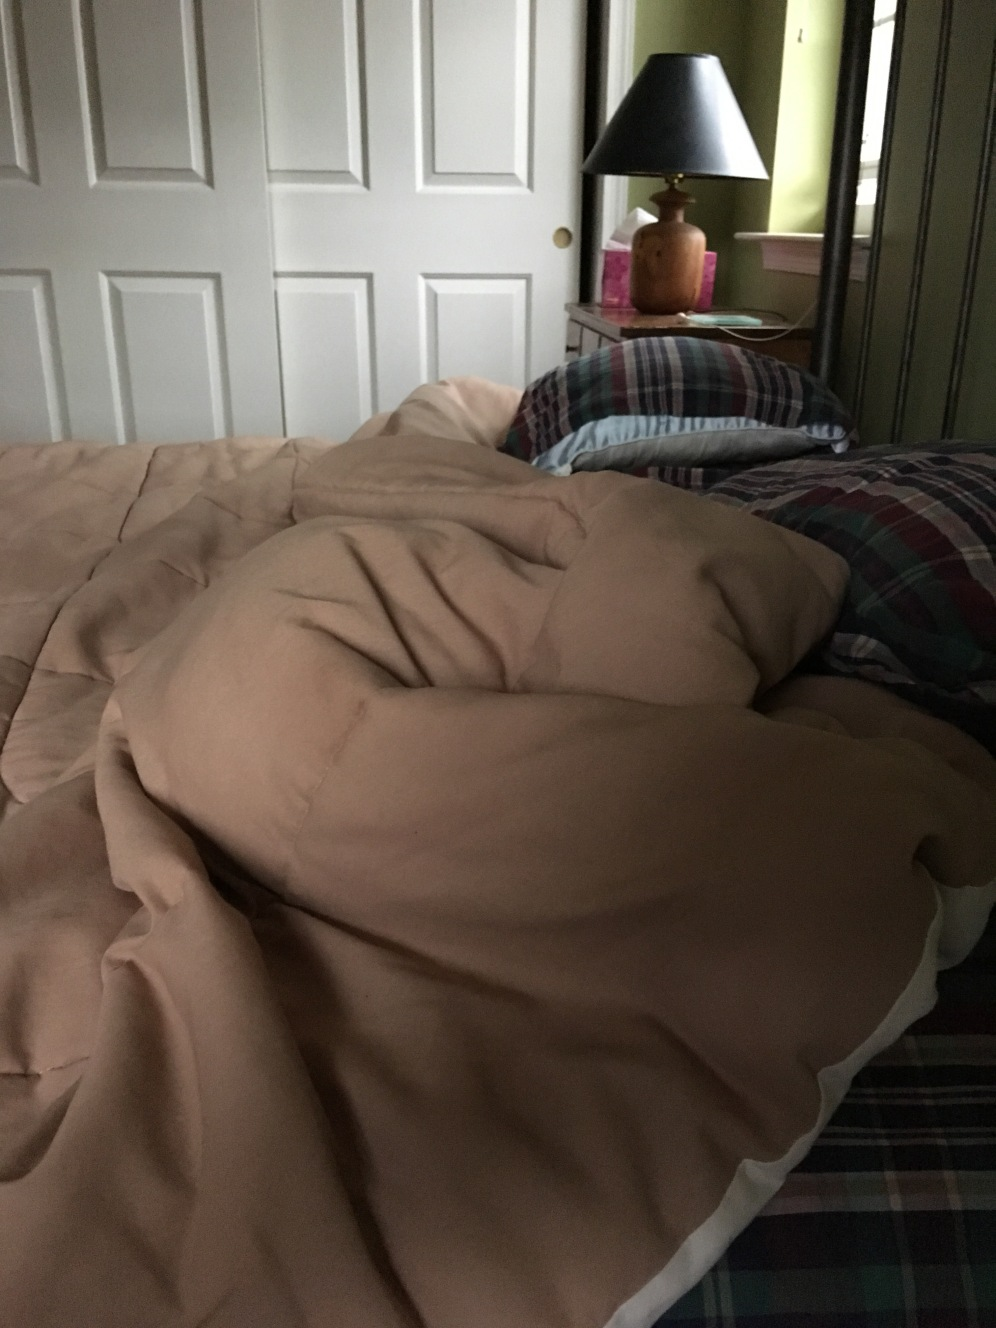 I see the lump in the messed up blanket